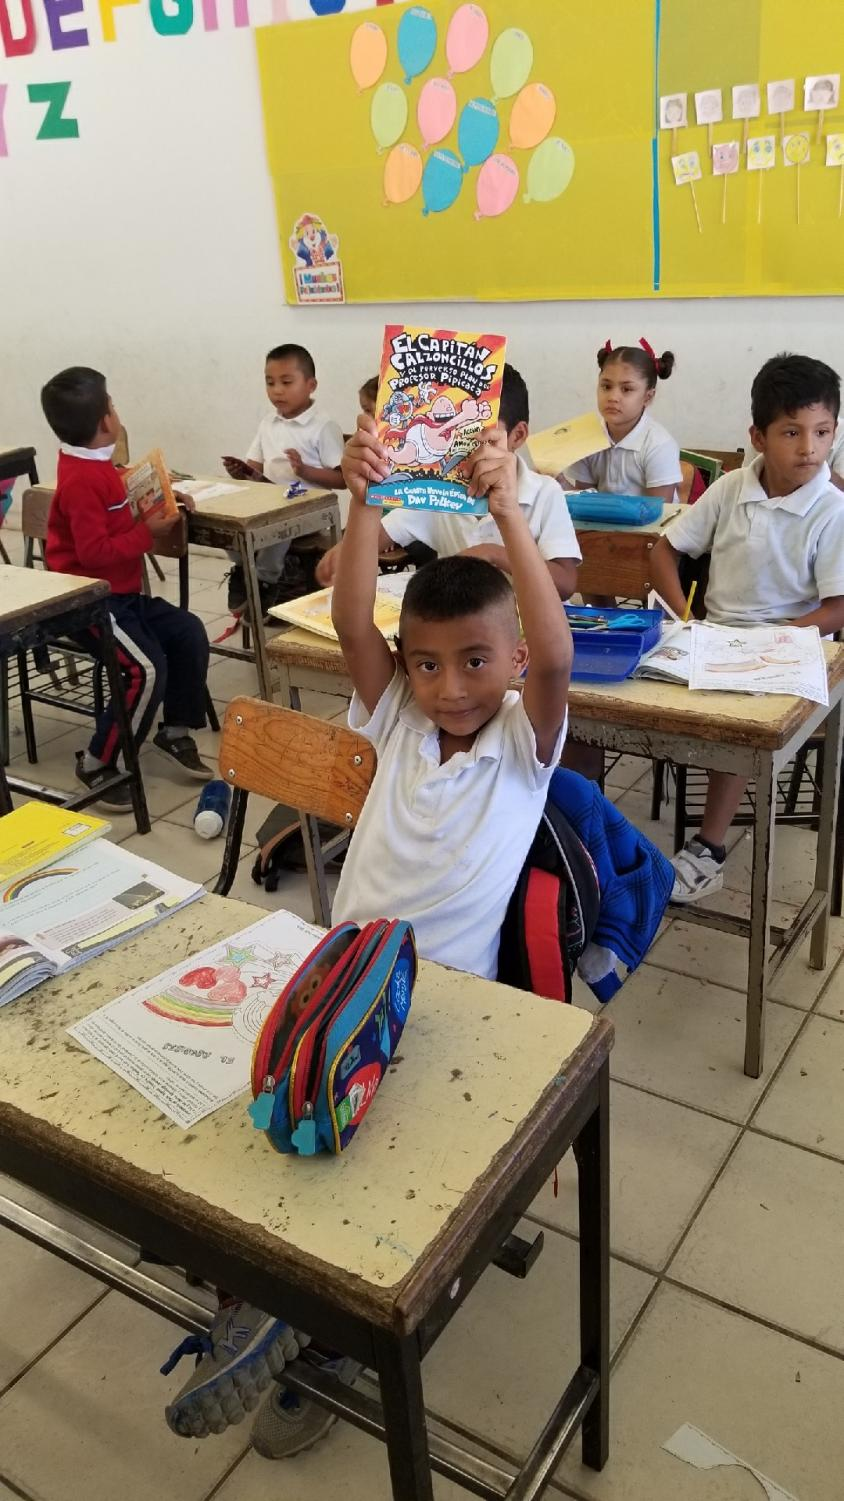 An elementary school boy in Puerto Vallarta expresses his joy after receiving his new book.